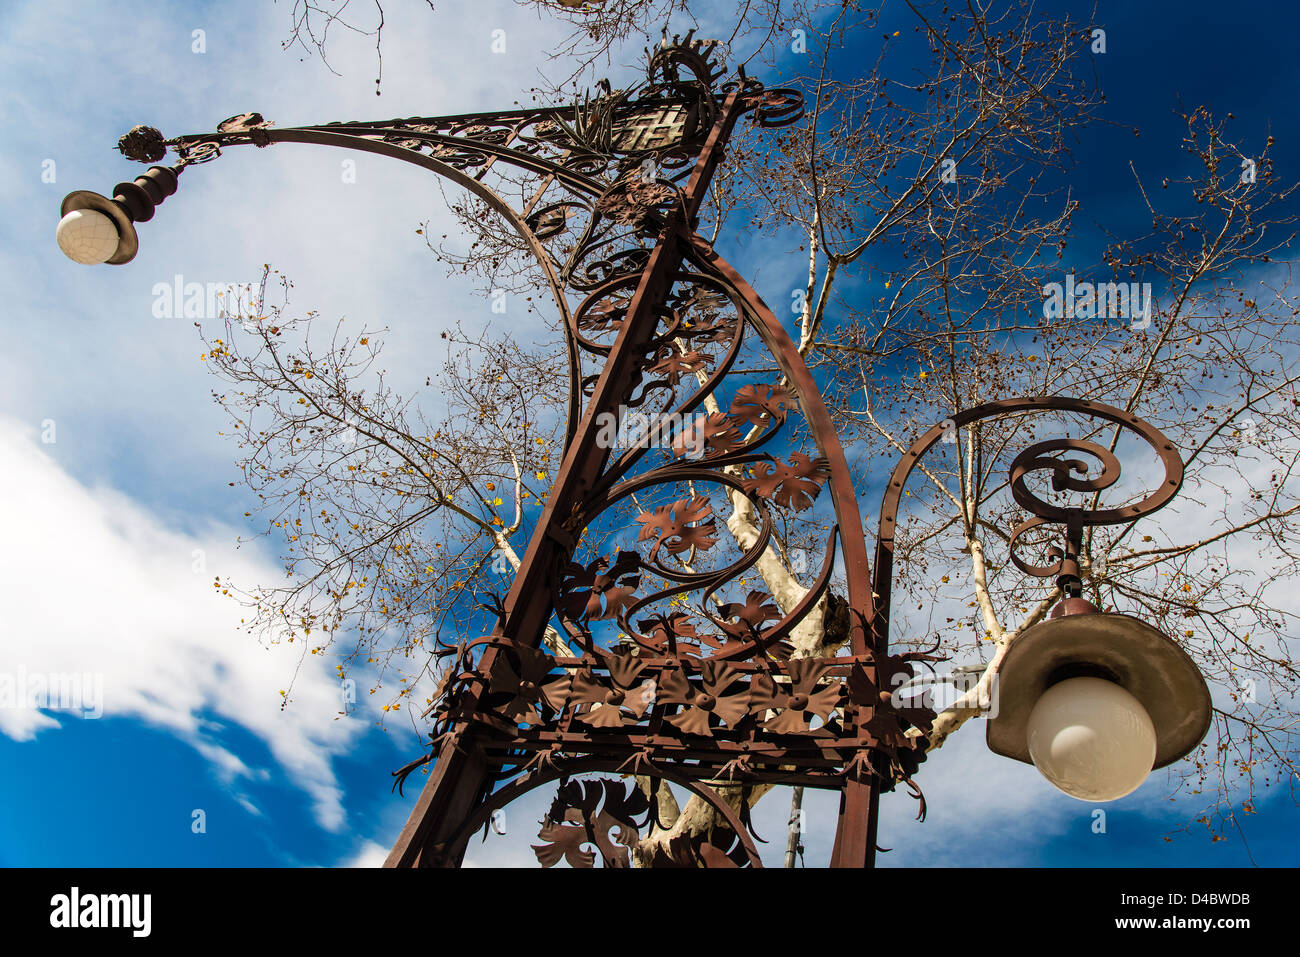 Modernist style street lamp in Passeig de Gracia, Barcelona, Catalonia, Spain - Stock Image